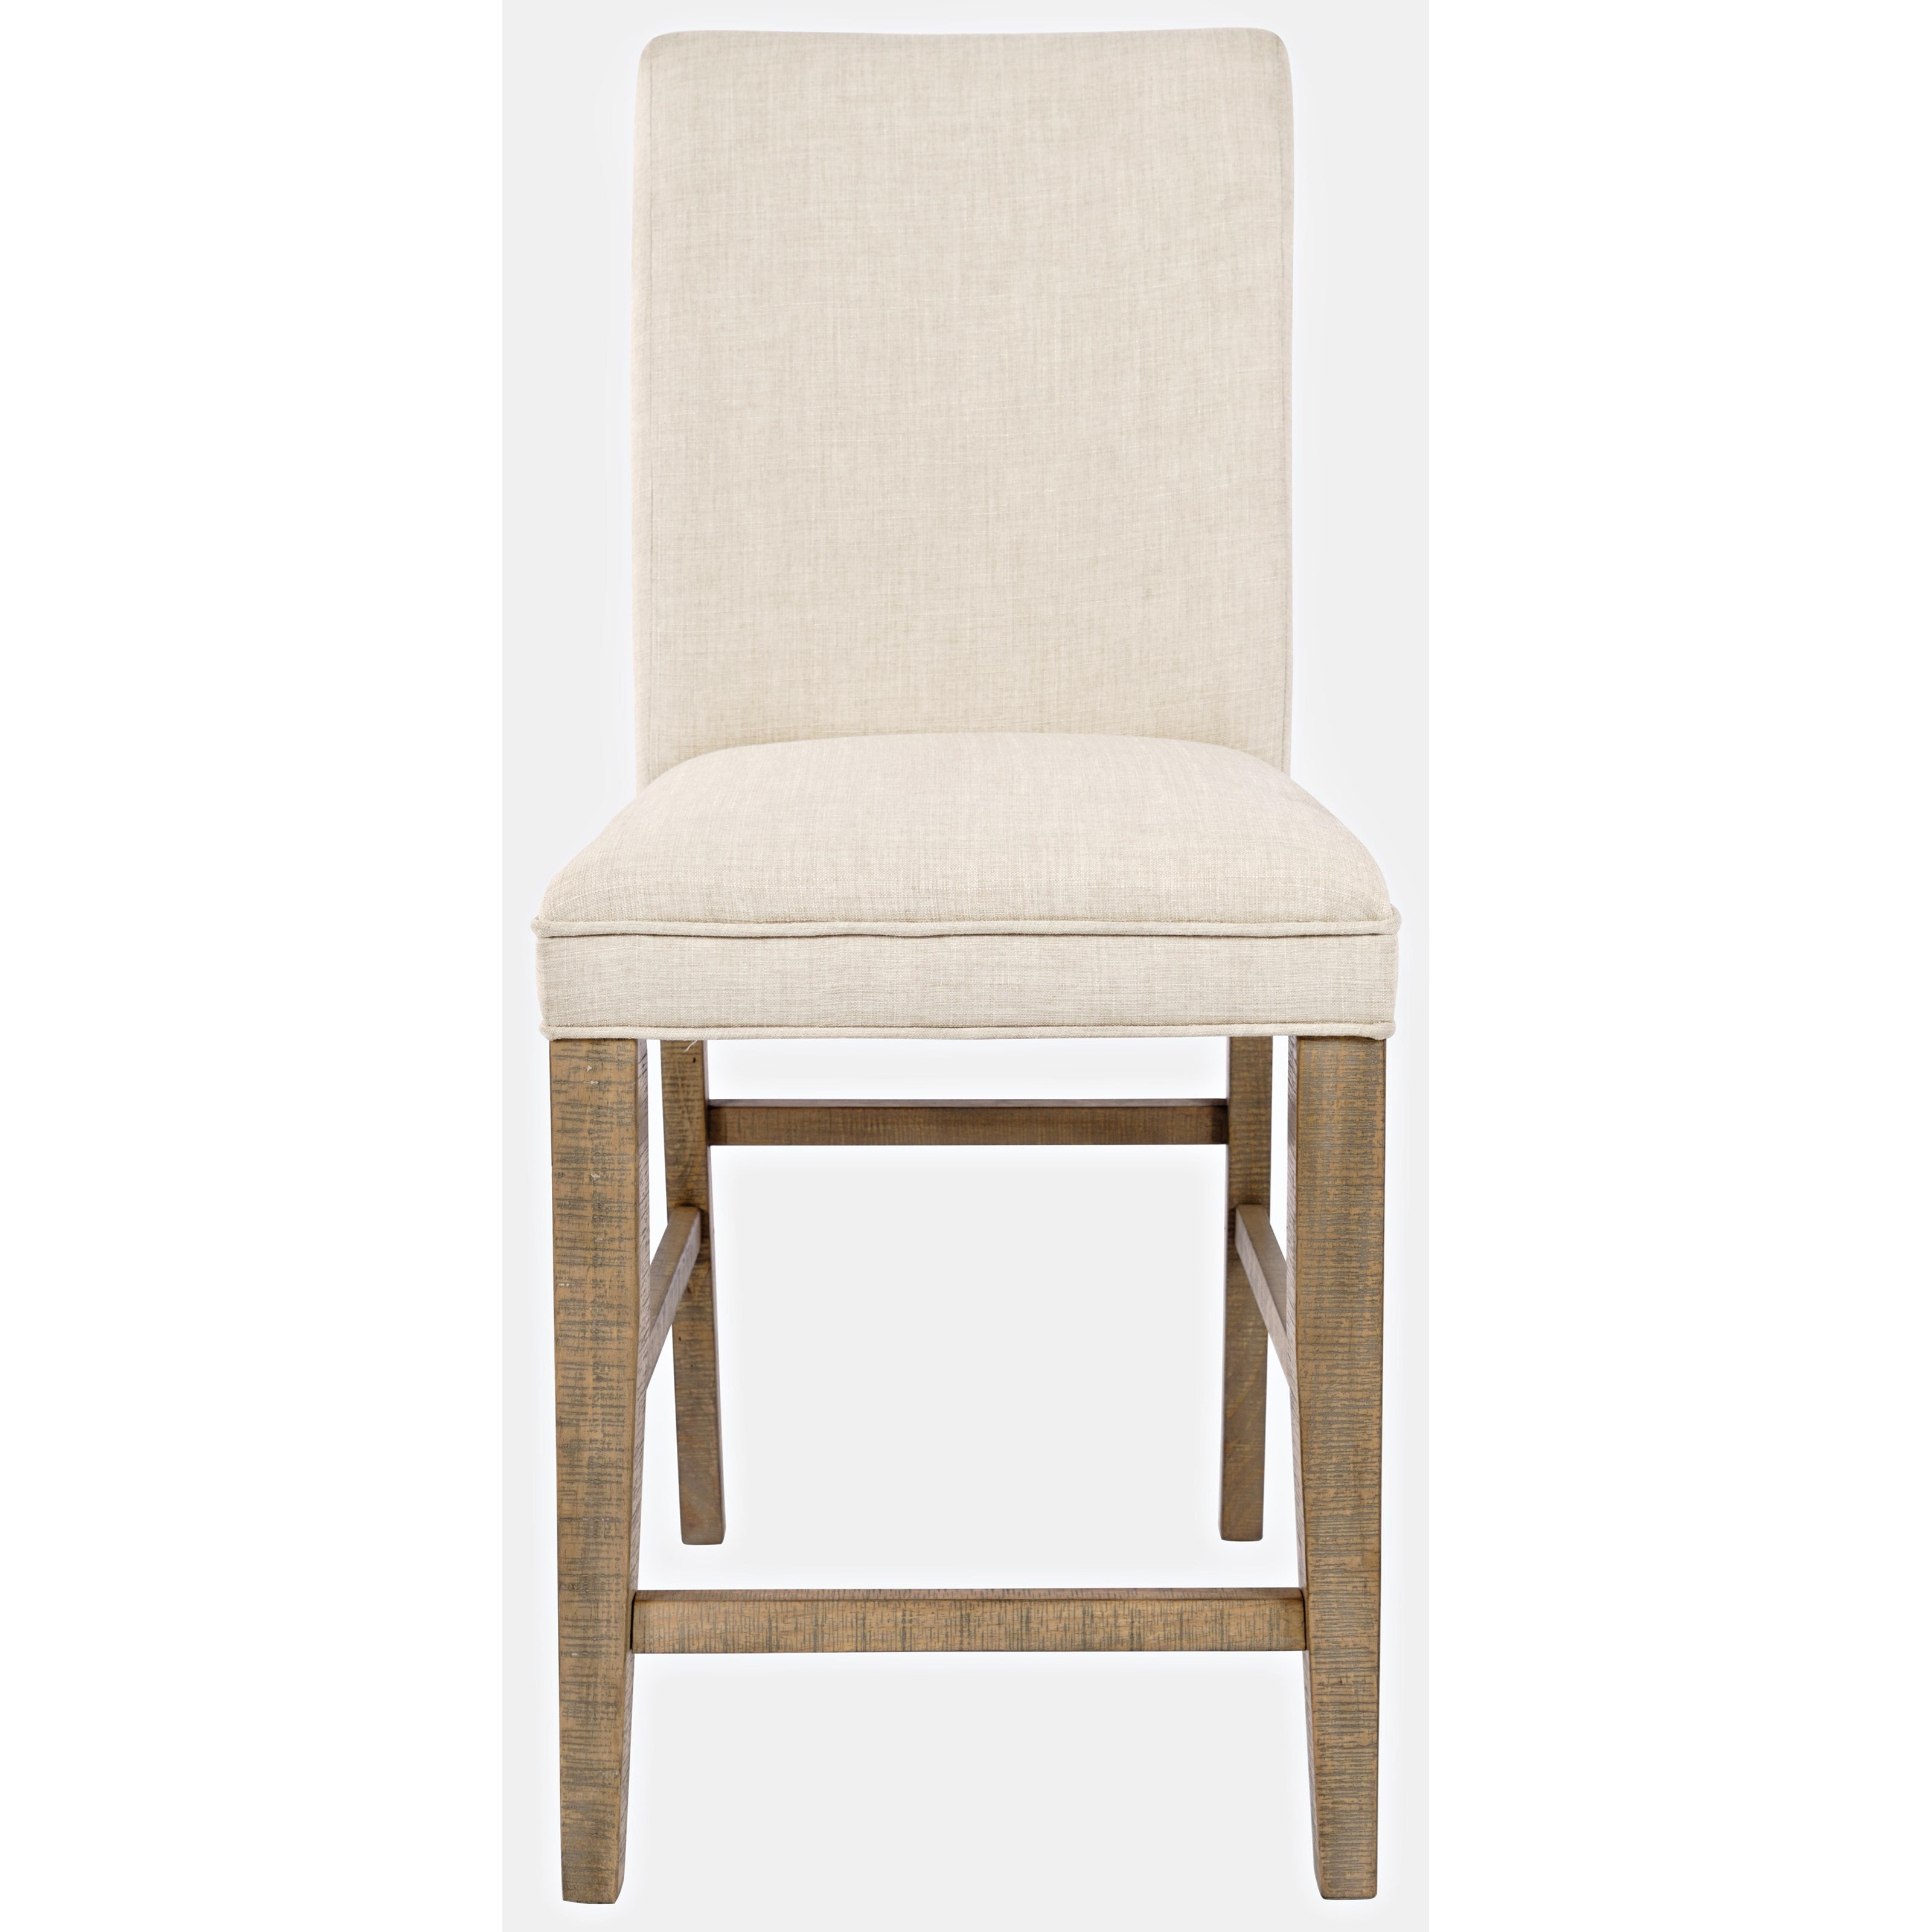 Carlyle Crossing Upholstered Stool by Jofran at Jofran